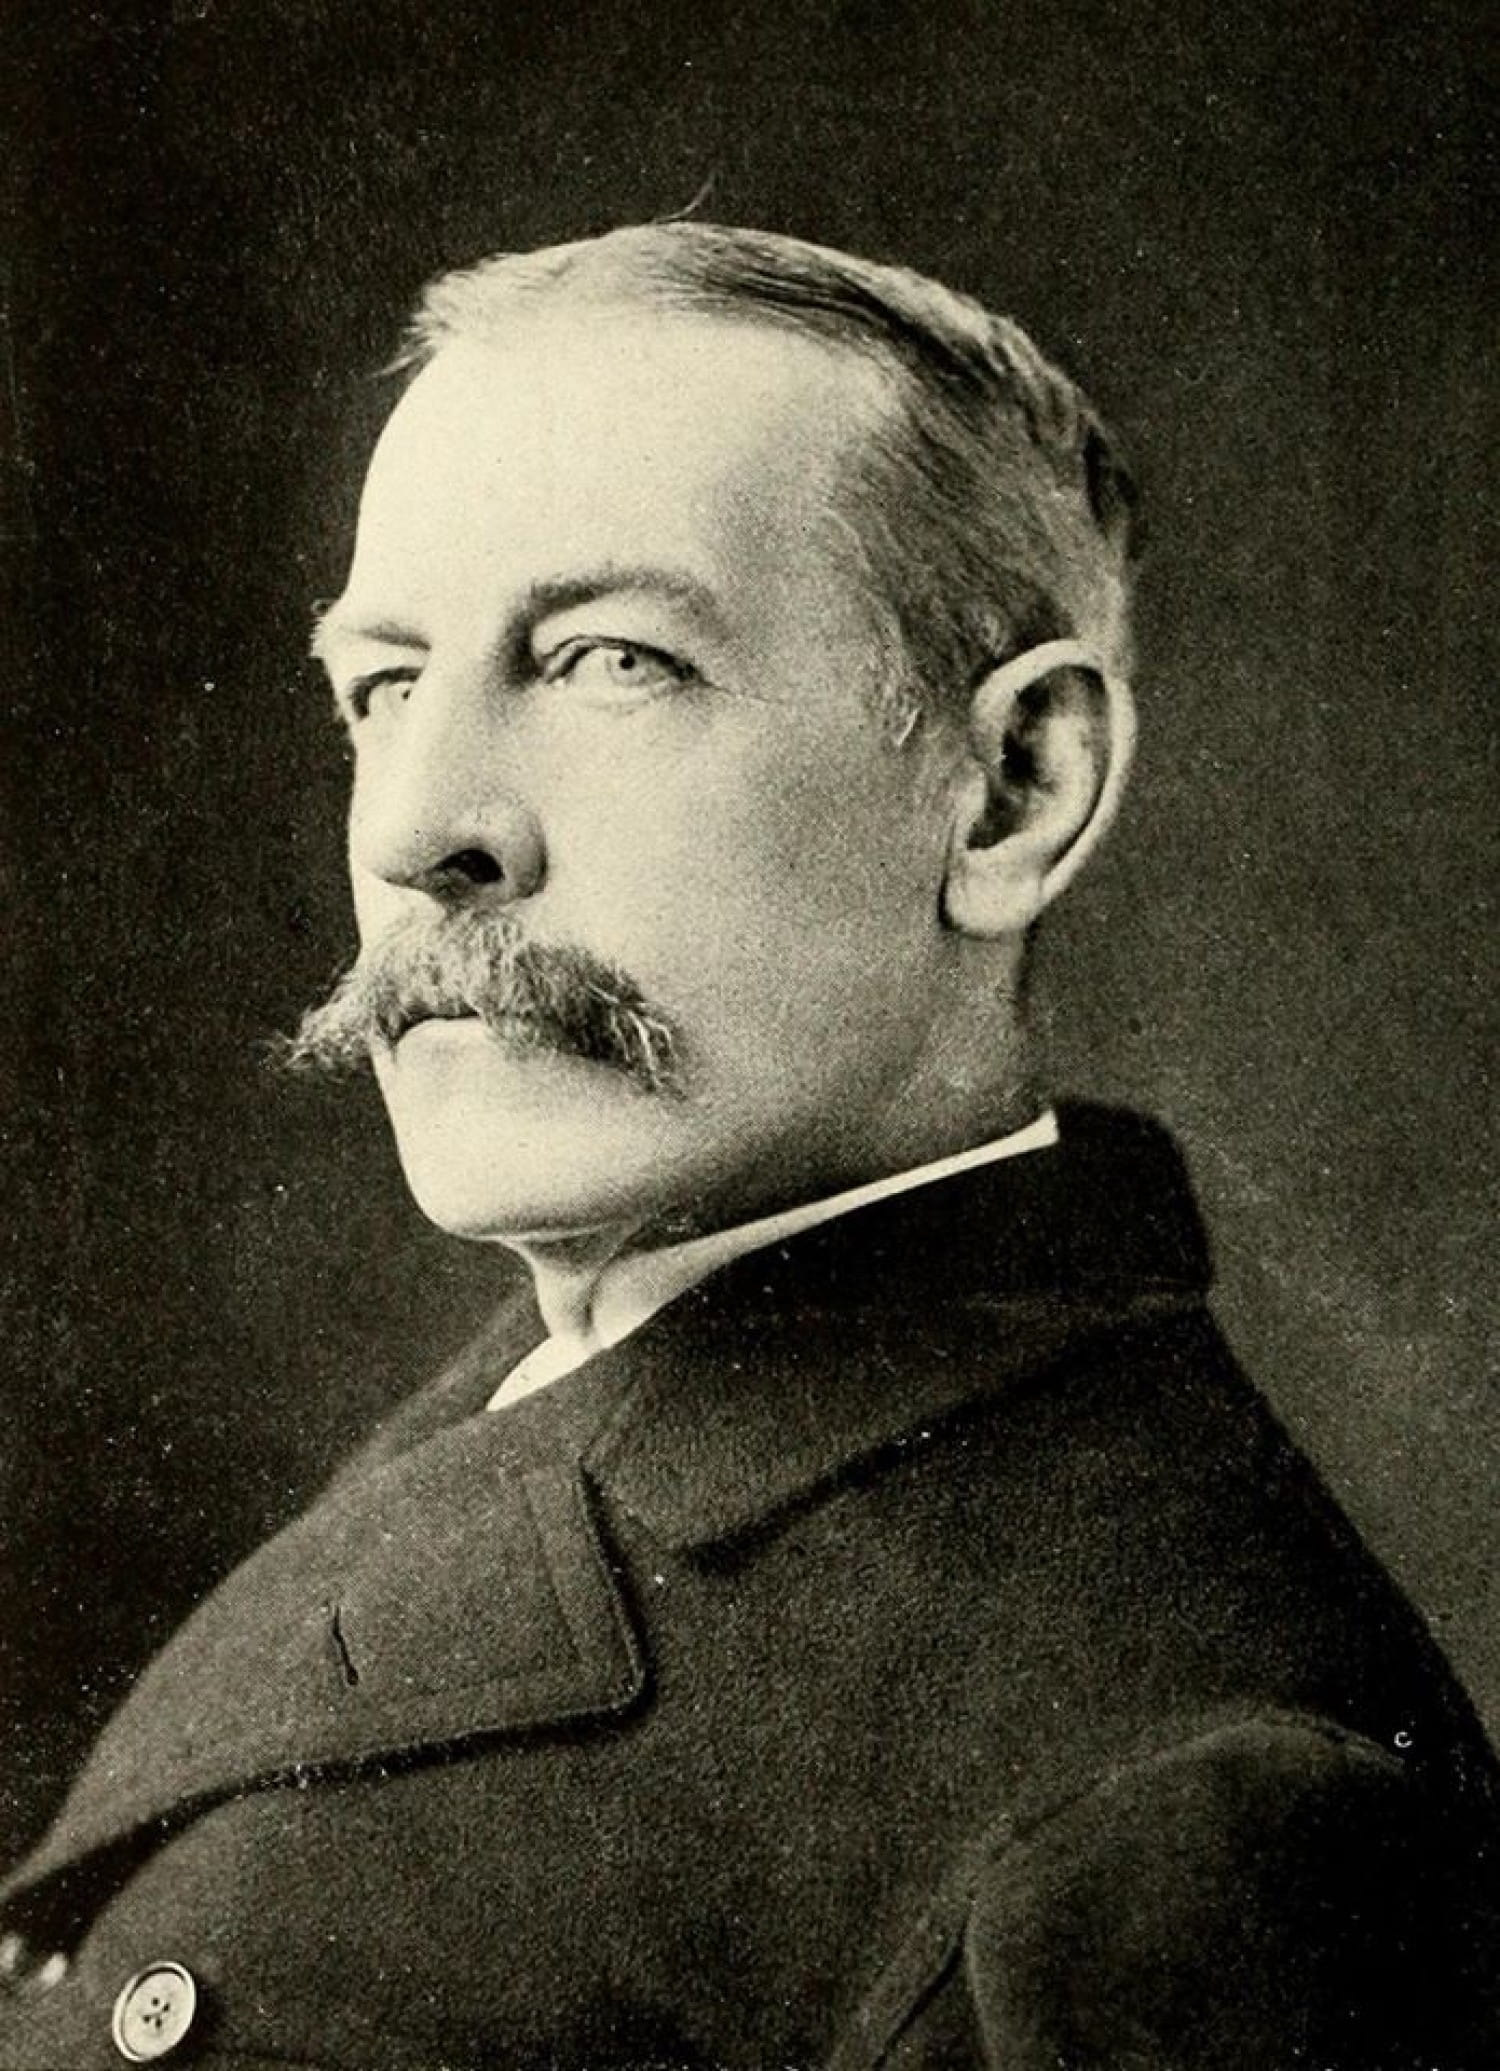 American newspaper publisher Gordon Bennett